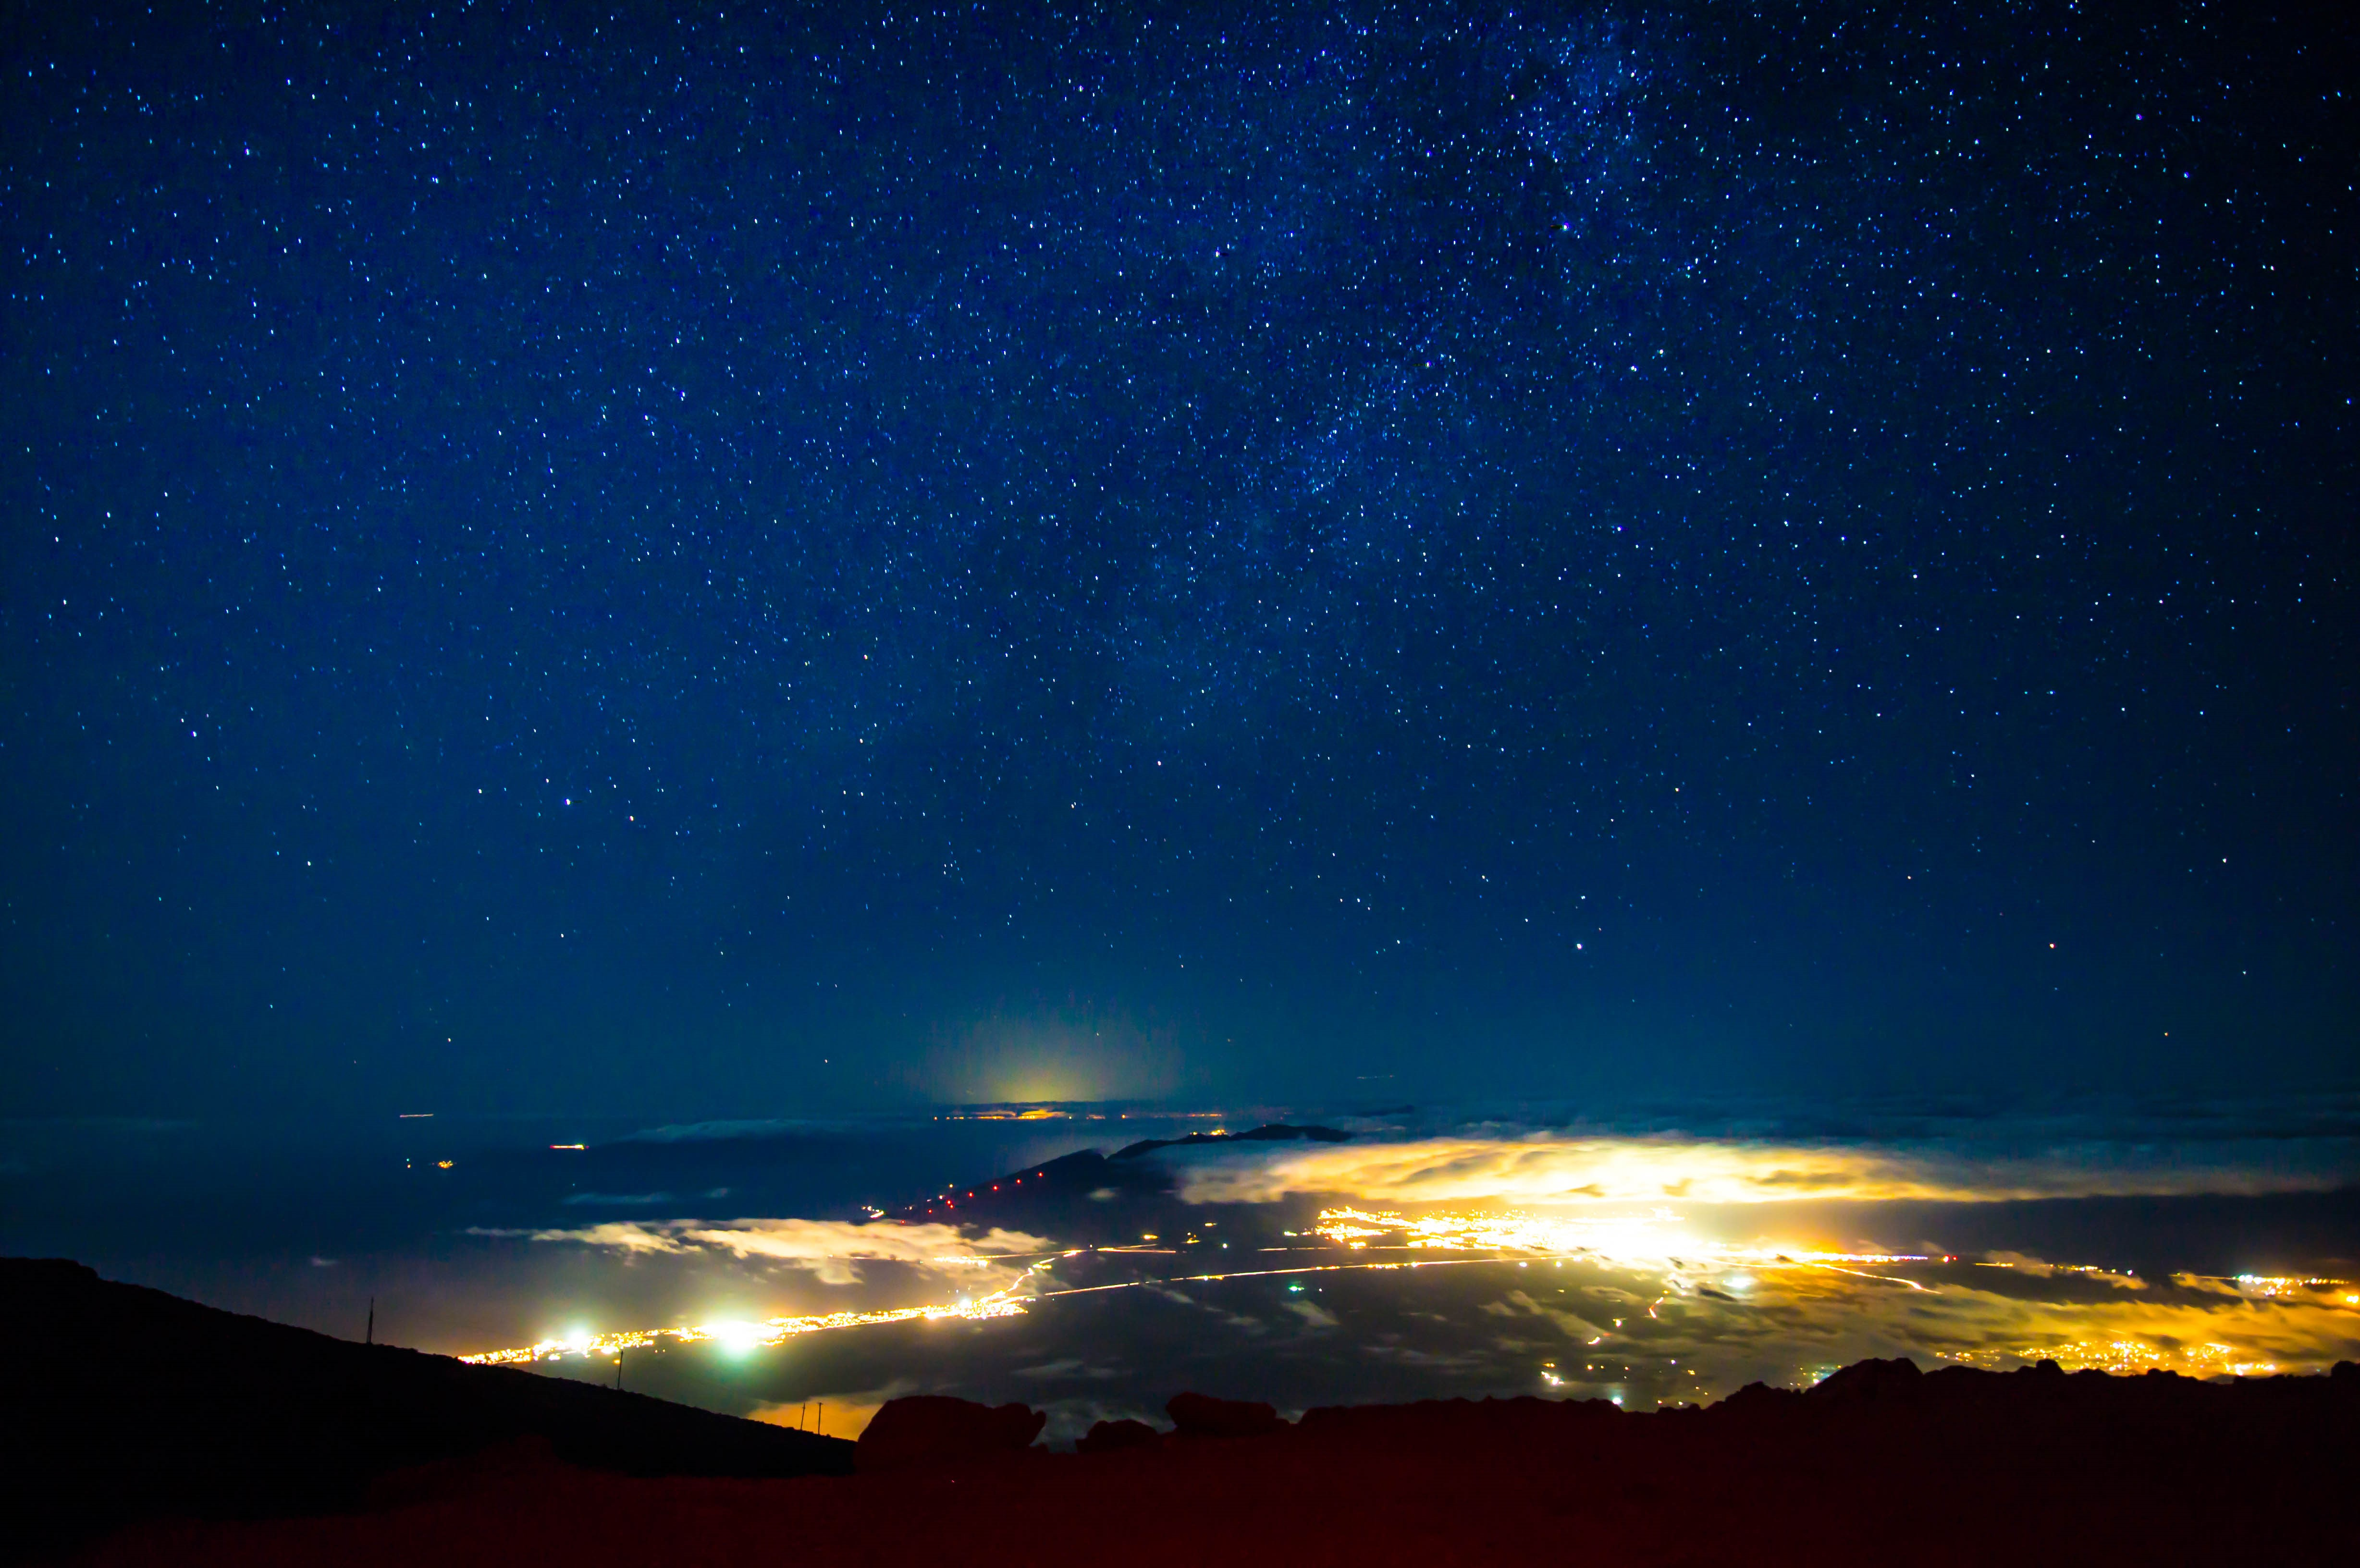 Bright Stars In A Cobalt Blue Night Sky Over The City Of Maui